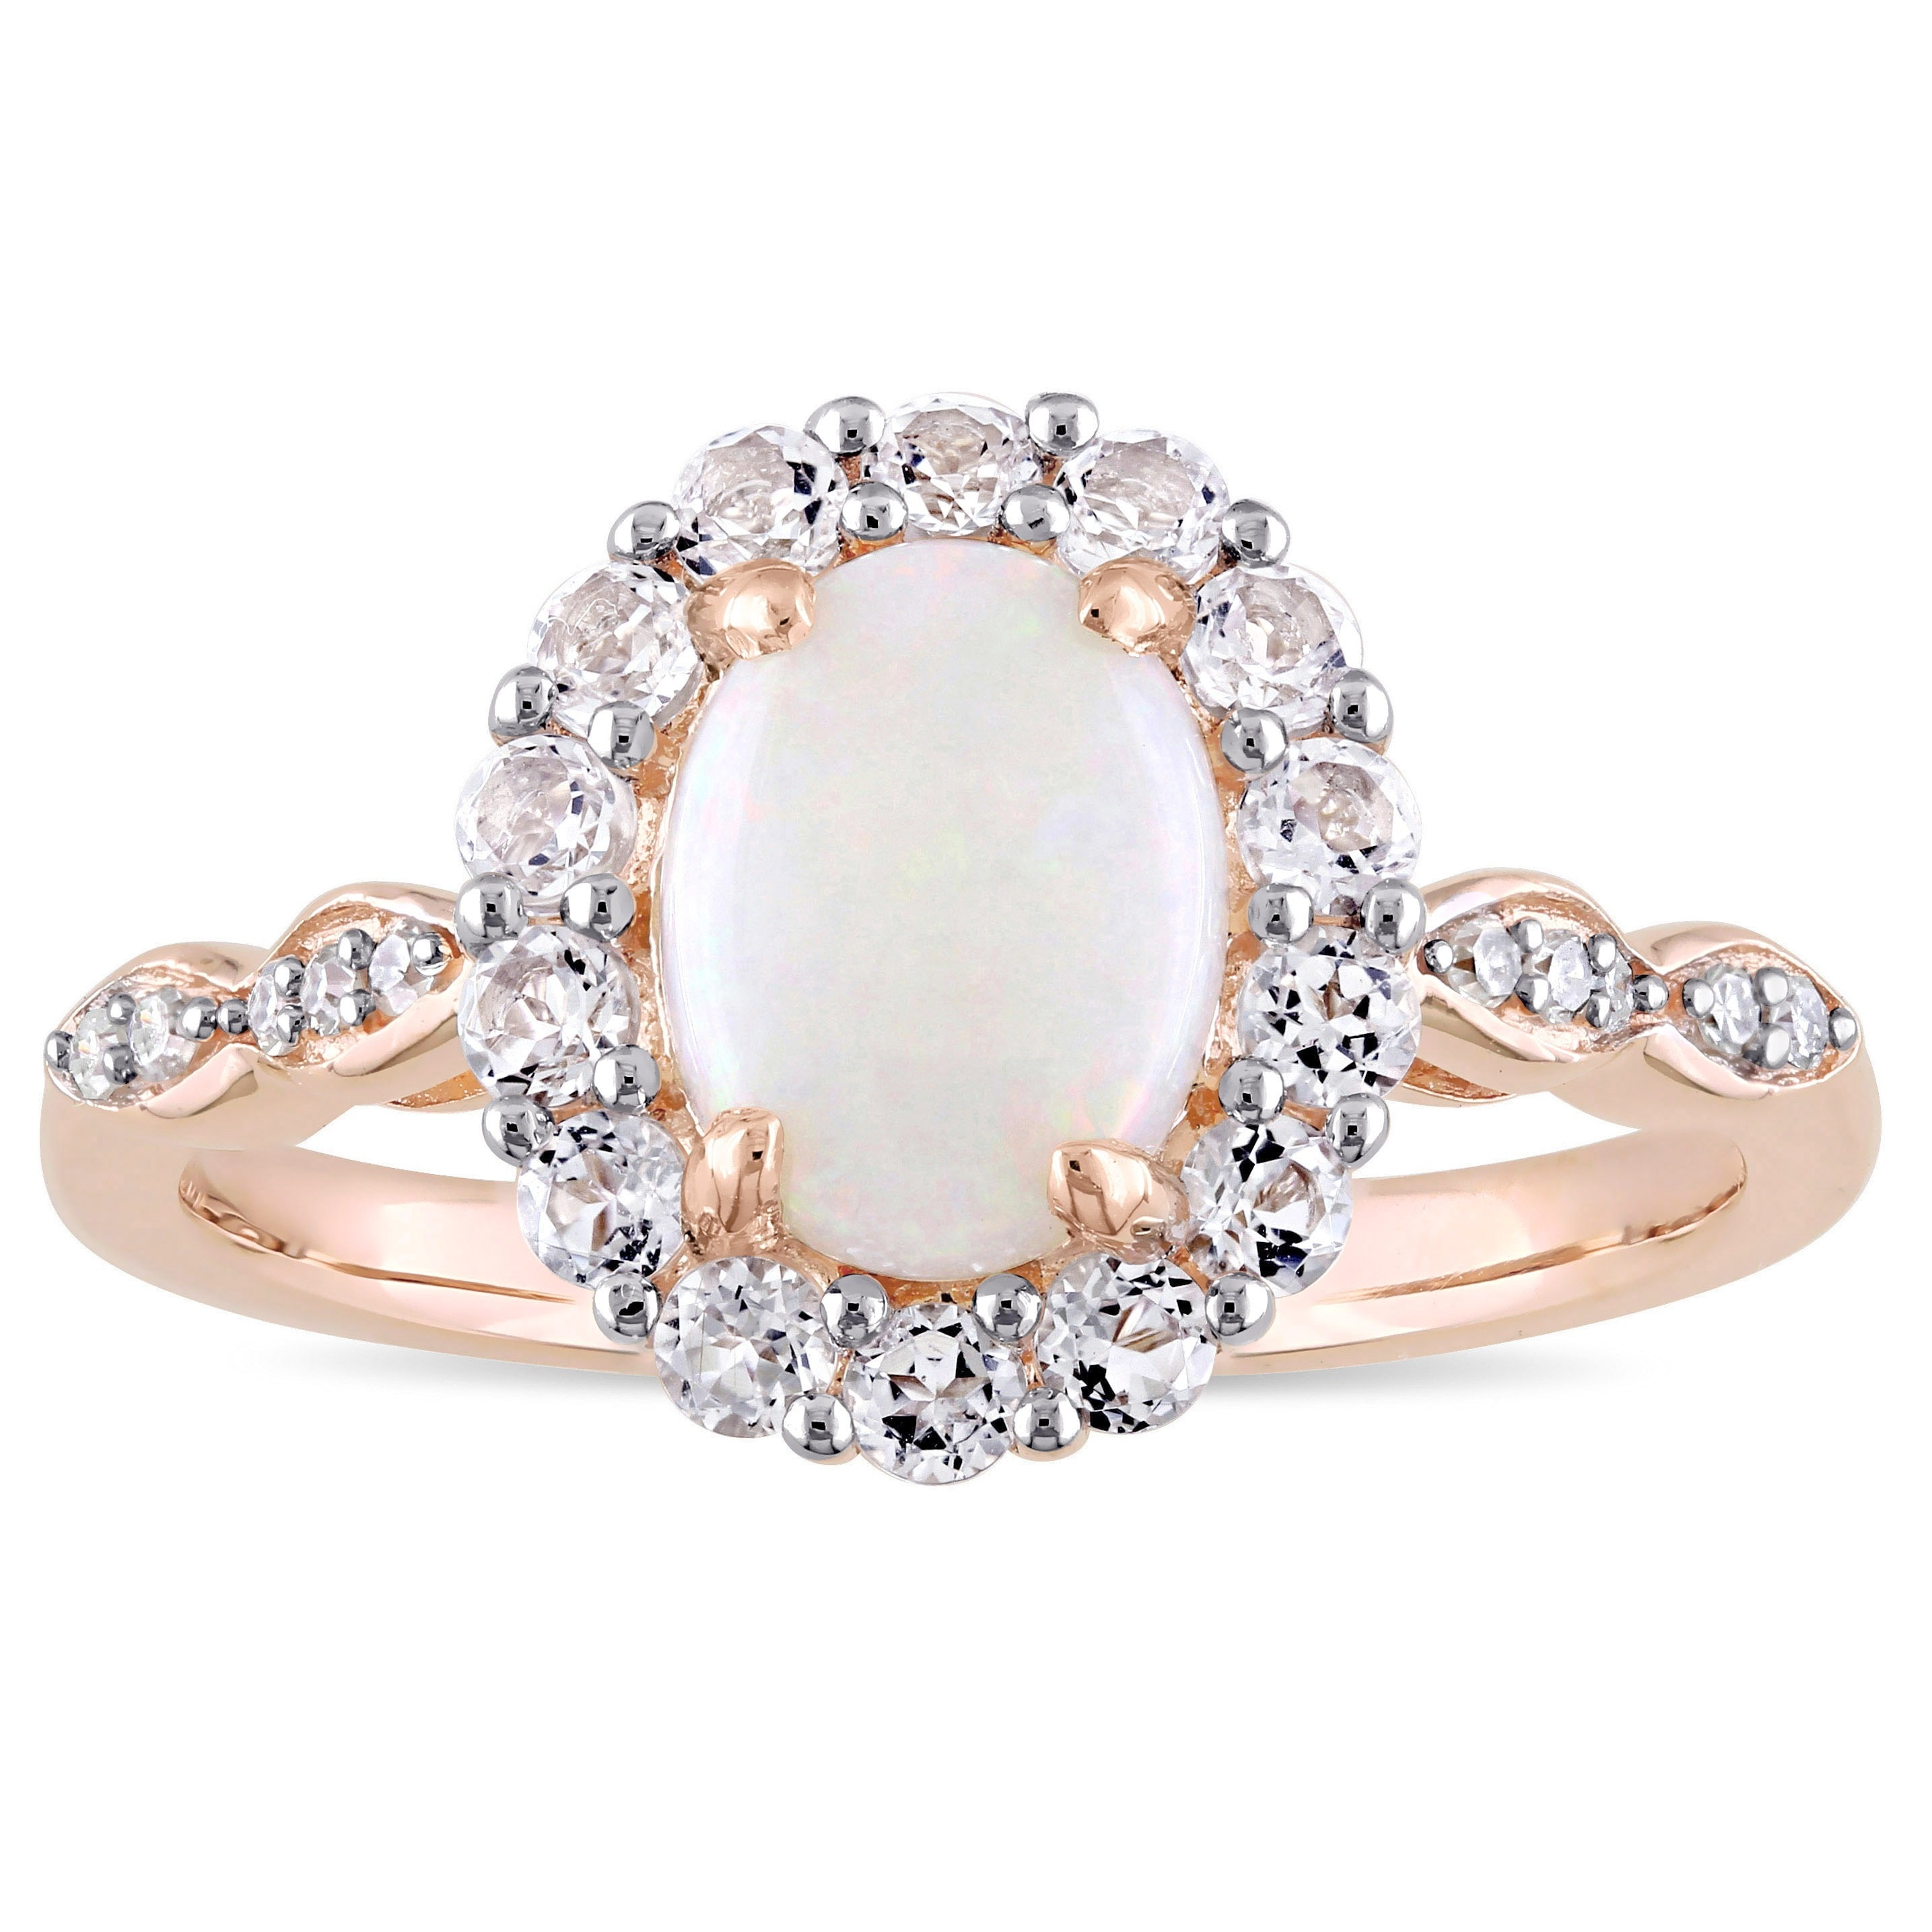 rings engagement jewelers cut jewelry coast princess ring diamond accent worthington accents